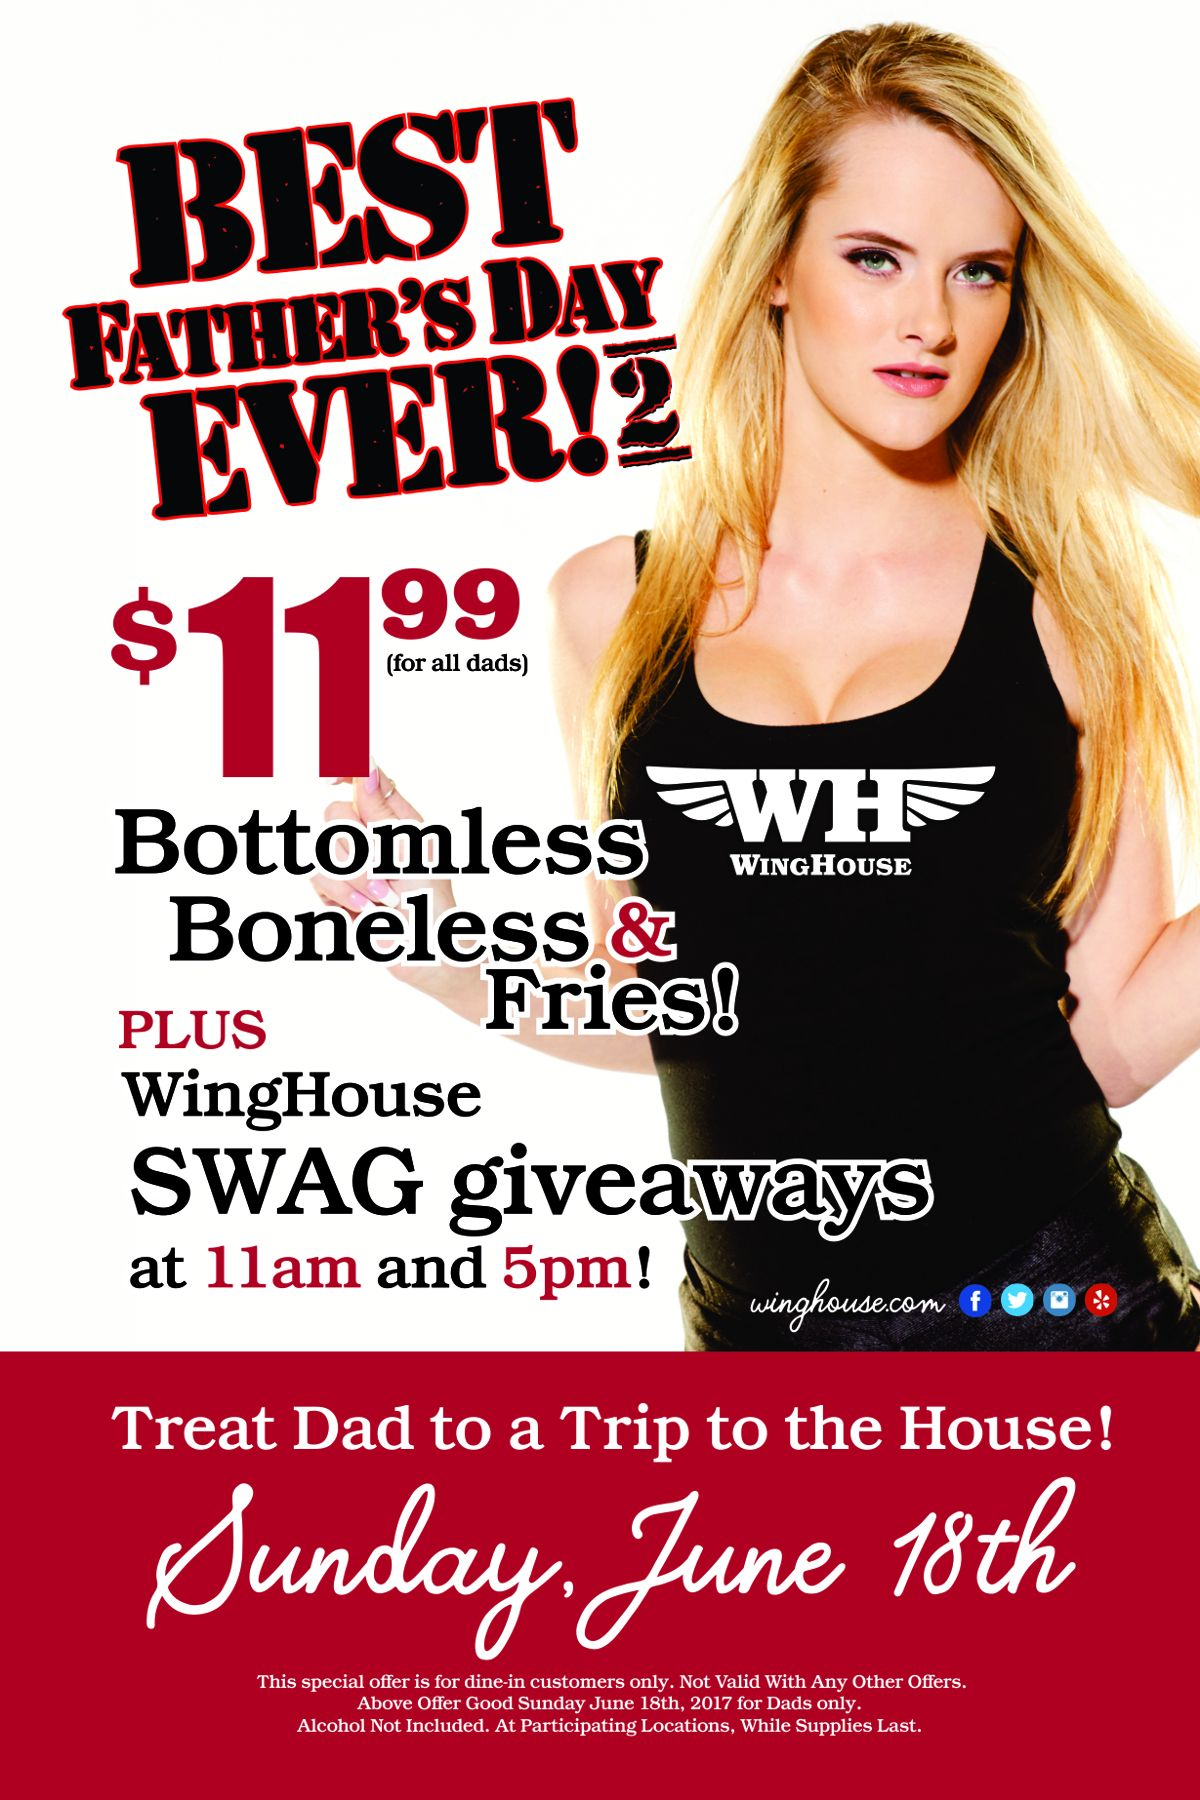 "Celebrate the Best Father's Day Ever ""2"" at WingHouse"